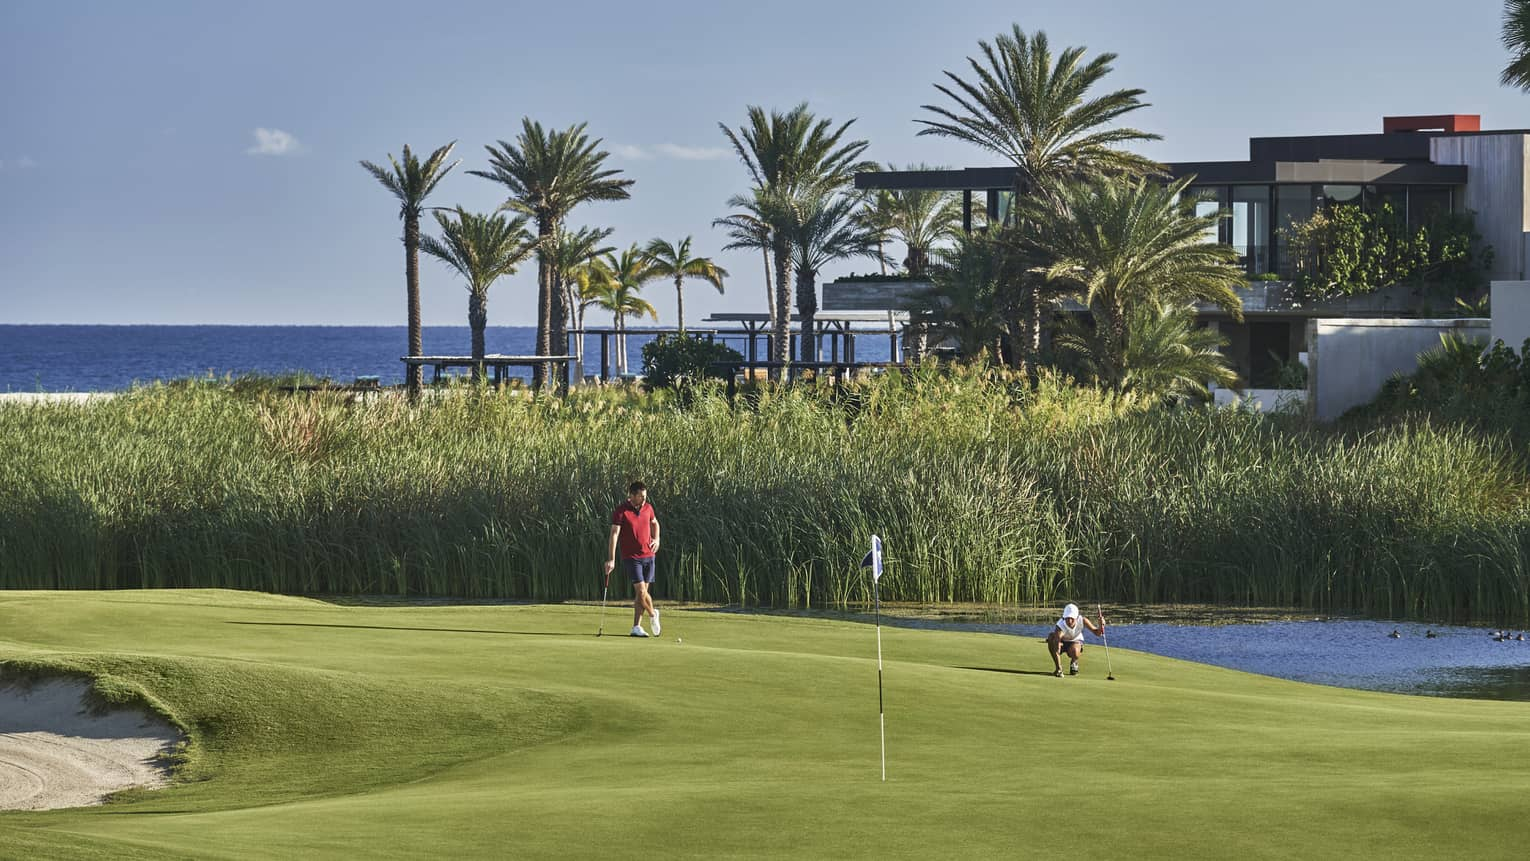 Two golfers enjoy a day on the golf course at four seasons los cabos with palm trees and the ocean in the backgound